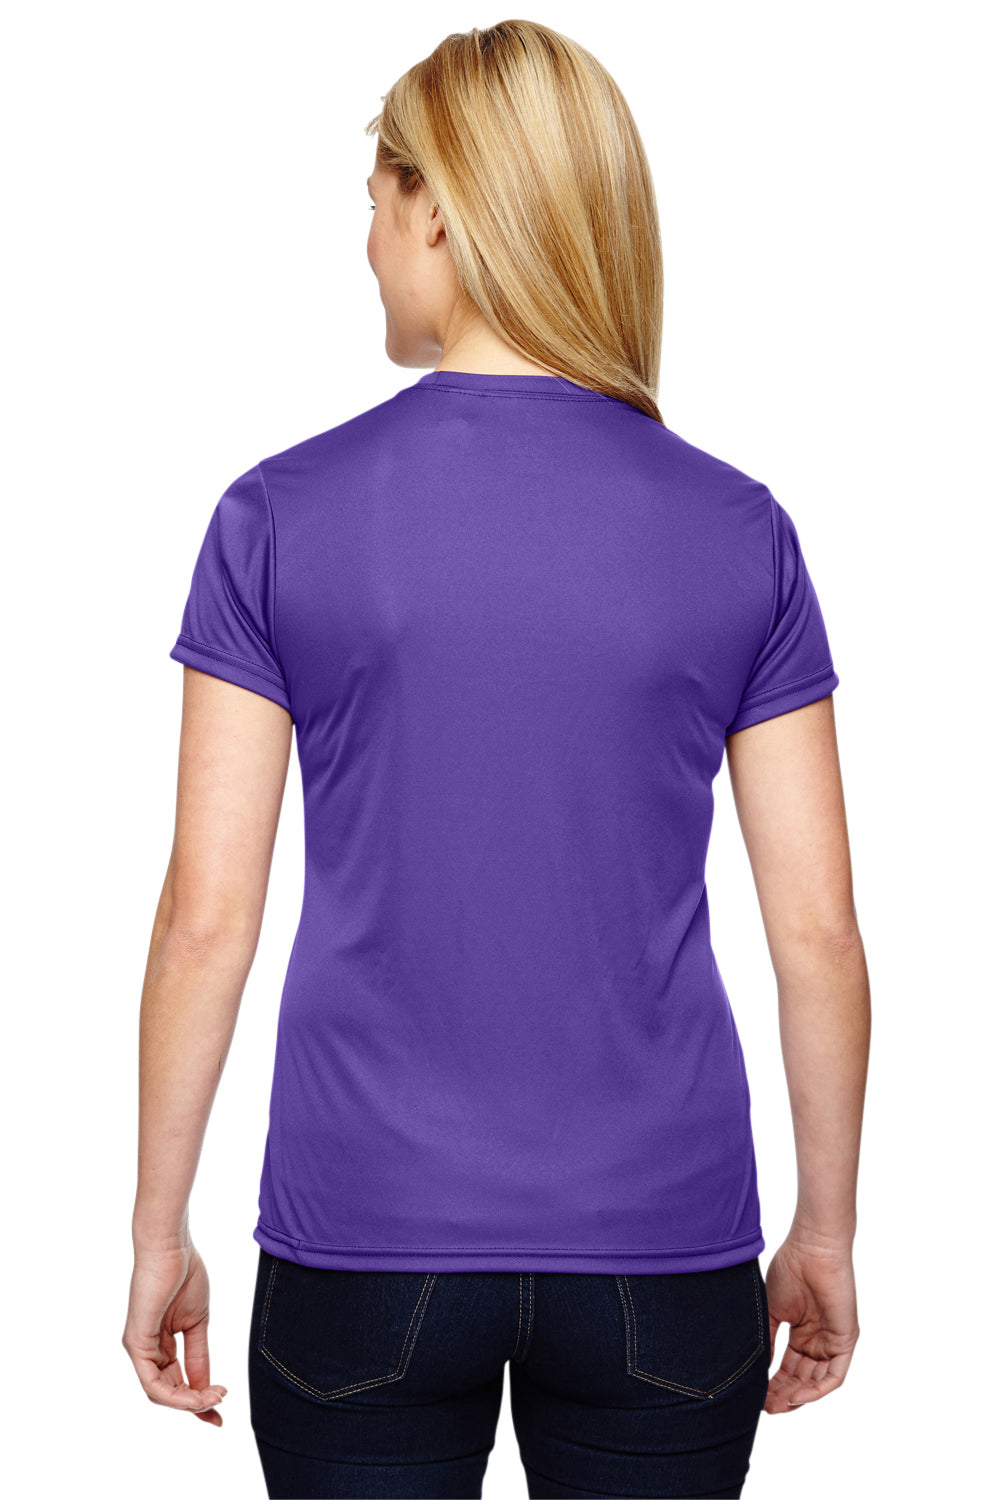 A4 NW3201 Womens Cooling Performance Moisture Wicking Short Sleeve Crewneck T-Shirt Purple Back